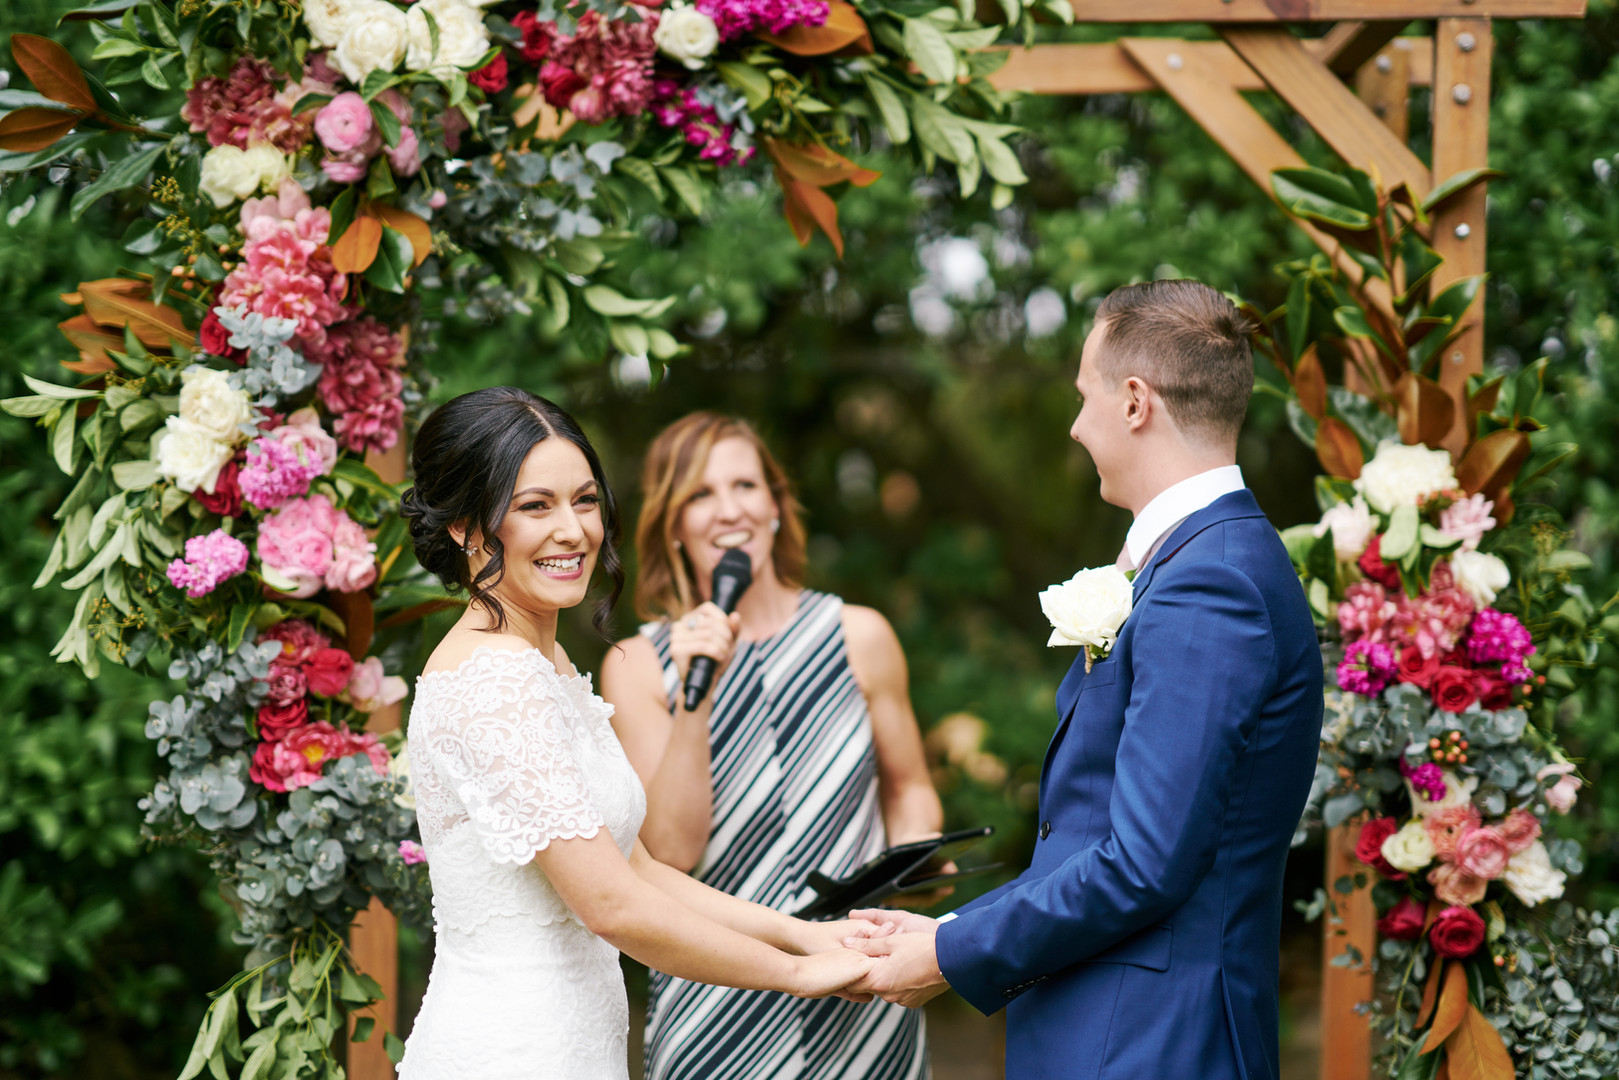 Cronulla Marriage Celebrant Amy Watson